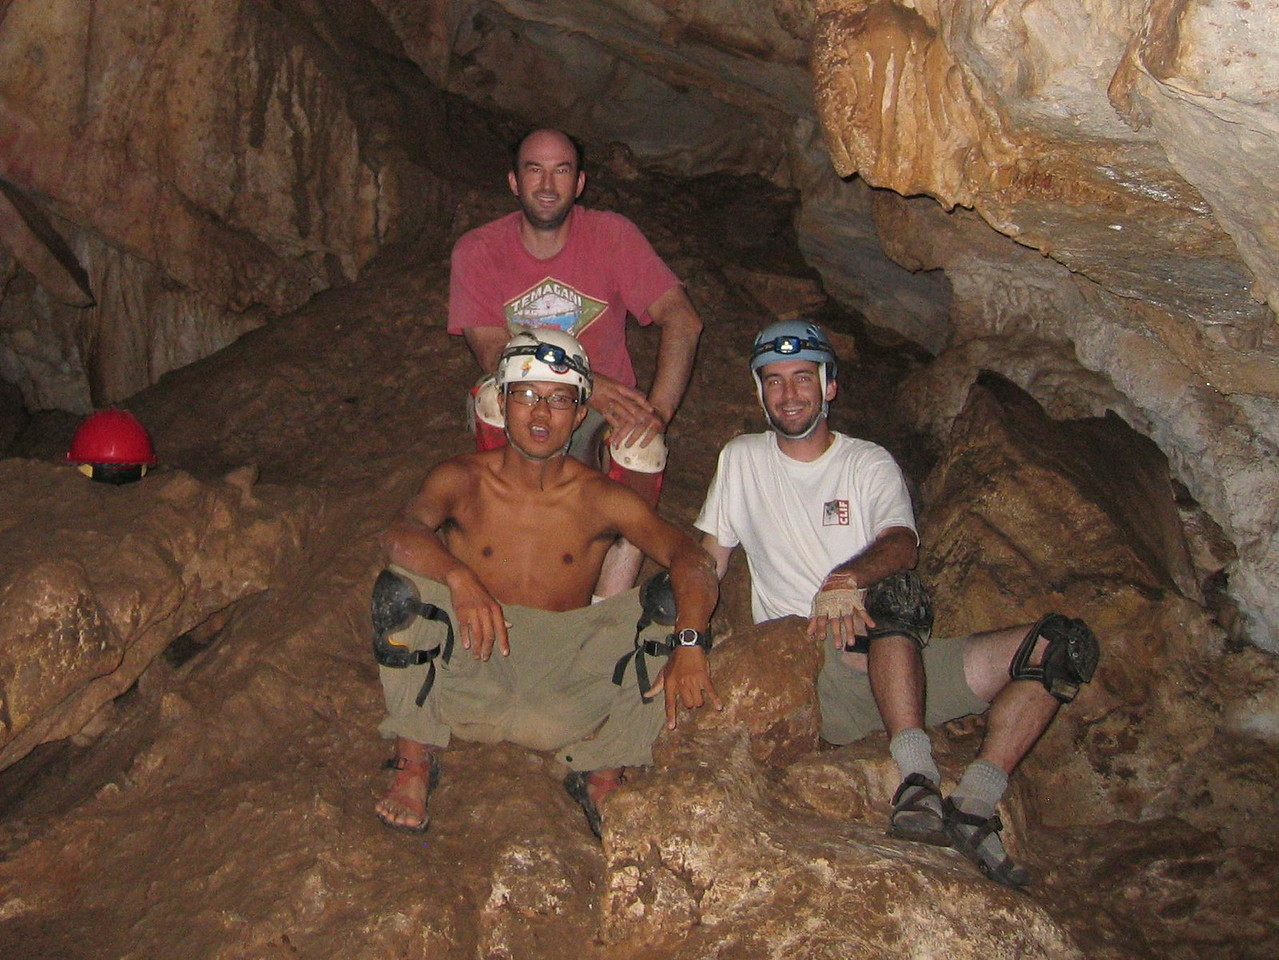 And the best group shot in a cave.